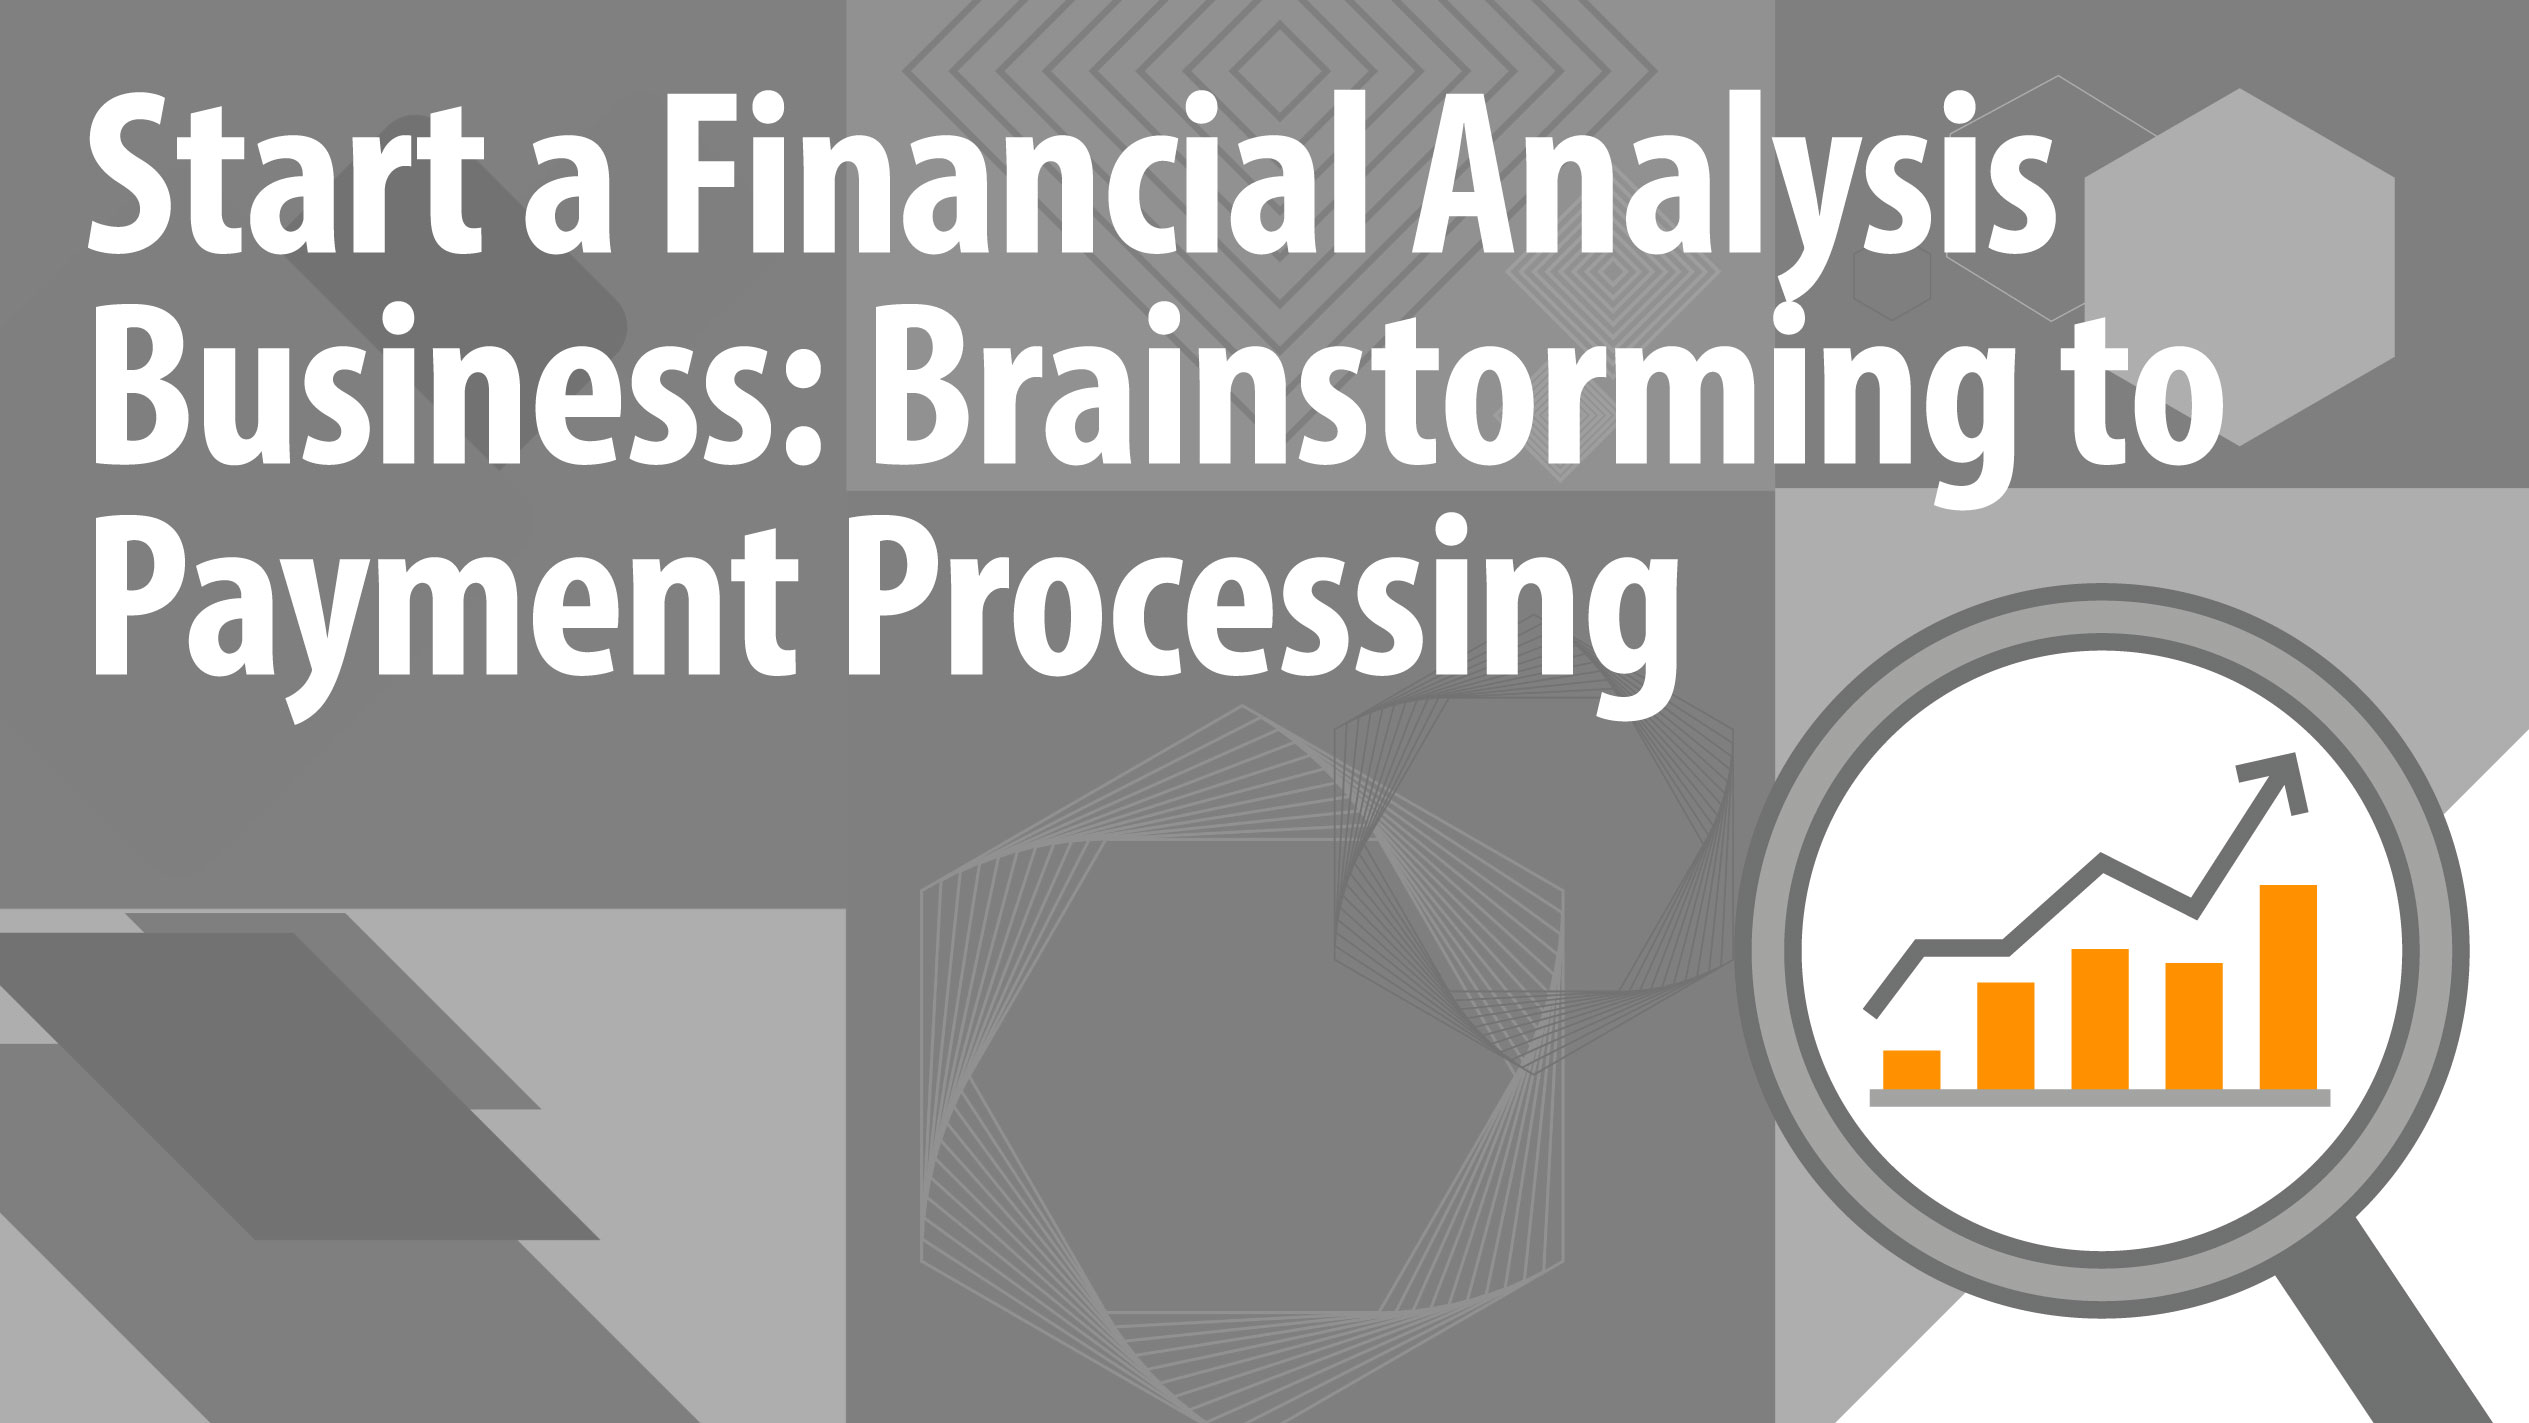 Start a Financial Analysis Business: Brainstorming to Payment Processing